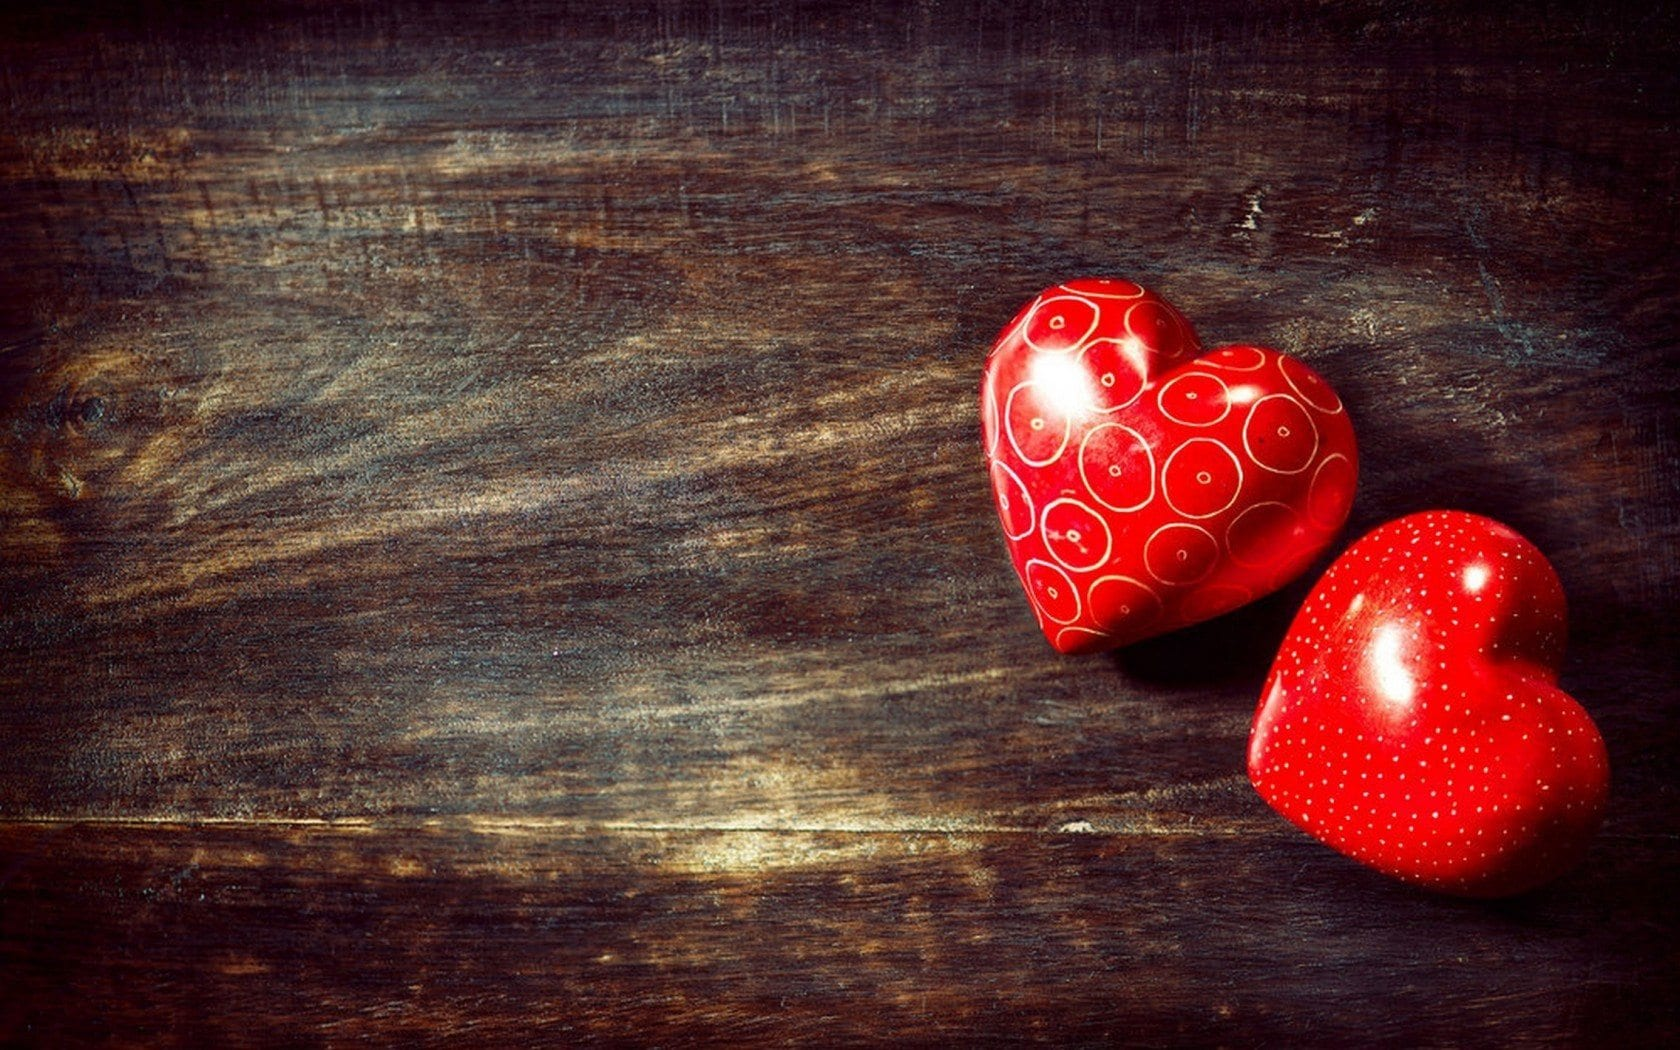 Love Wallpaper Images In Hd : Love Images / Love HD Wallpaper